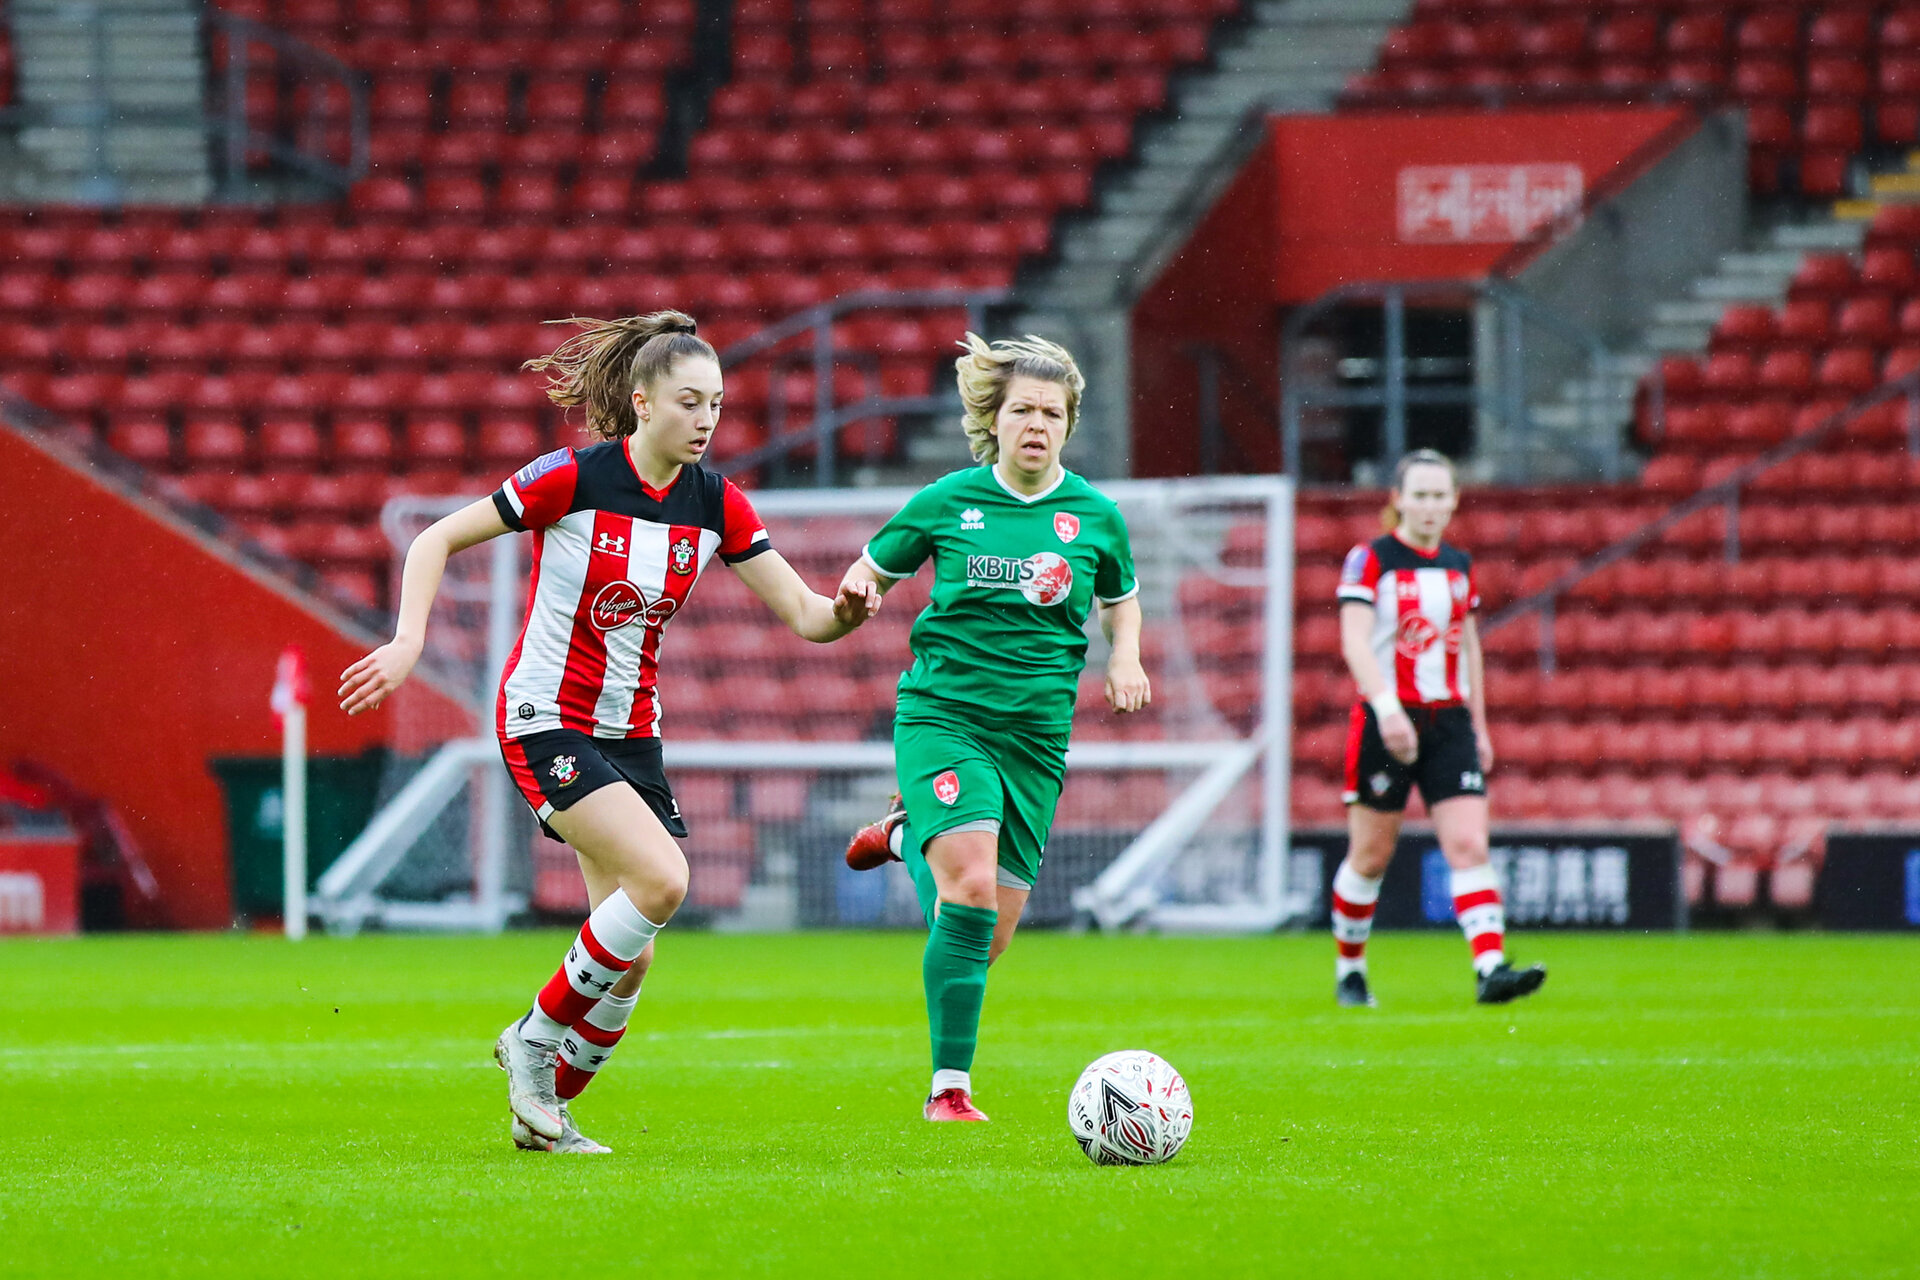 SOUTHAMPTON, ENGLAND - JANUARY 26: during the Women's FA Cup Fourth Round match between Southampton Womens FC and Coventry United Ladies at St Mary's Stadium on January 26, 2020 in Southampton, England